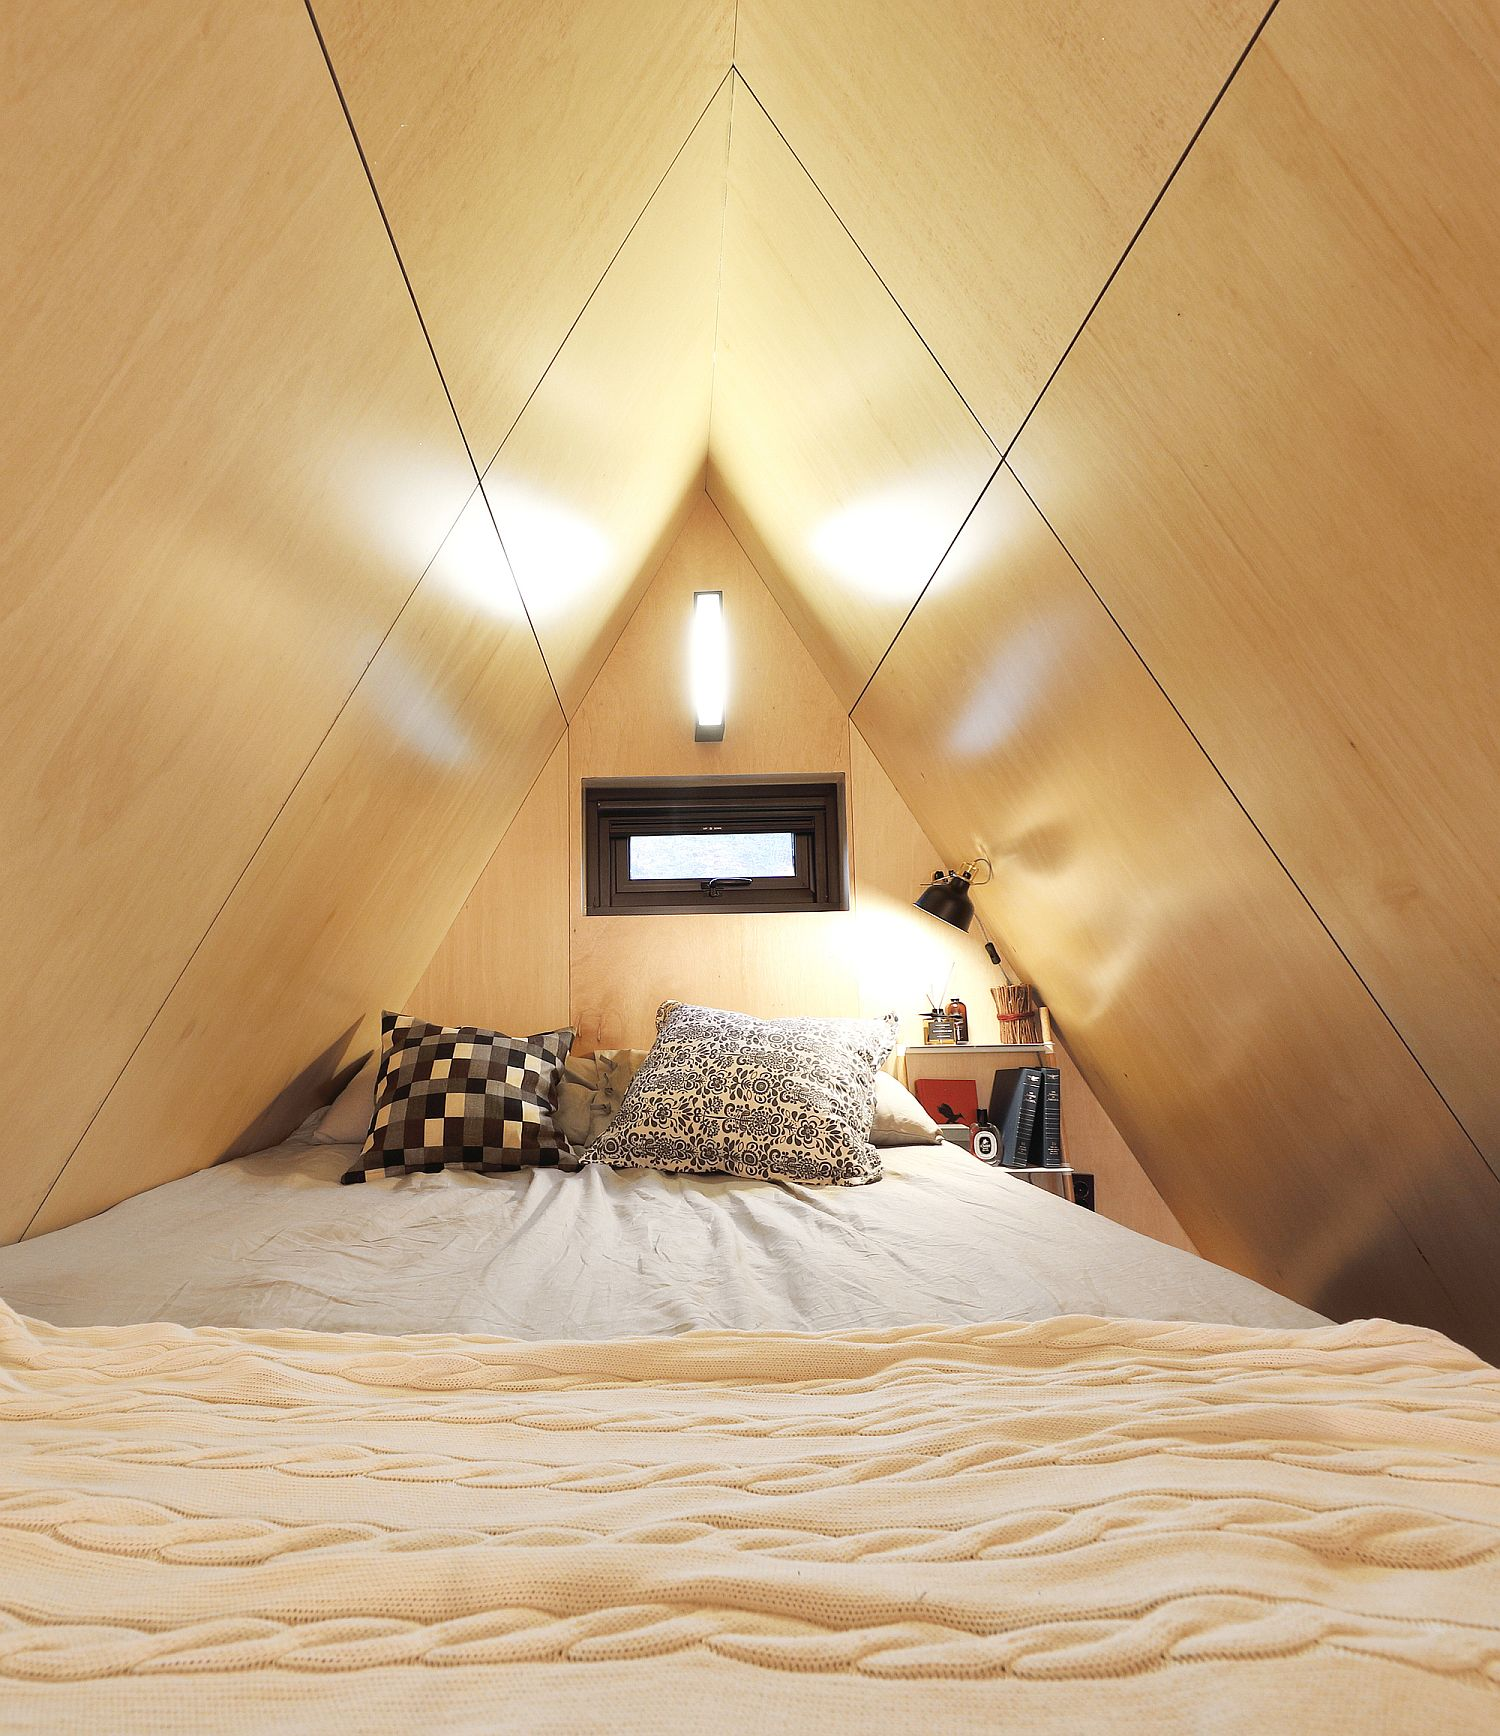 Space-savvy and woodsy bedroom of the tiny house with natural ventilation